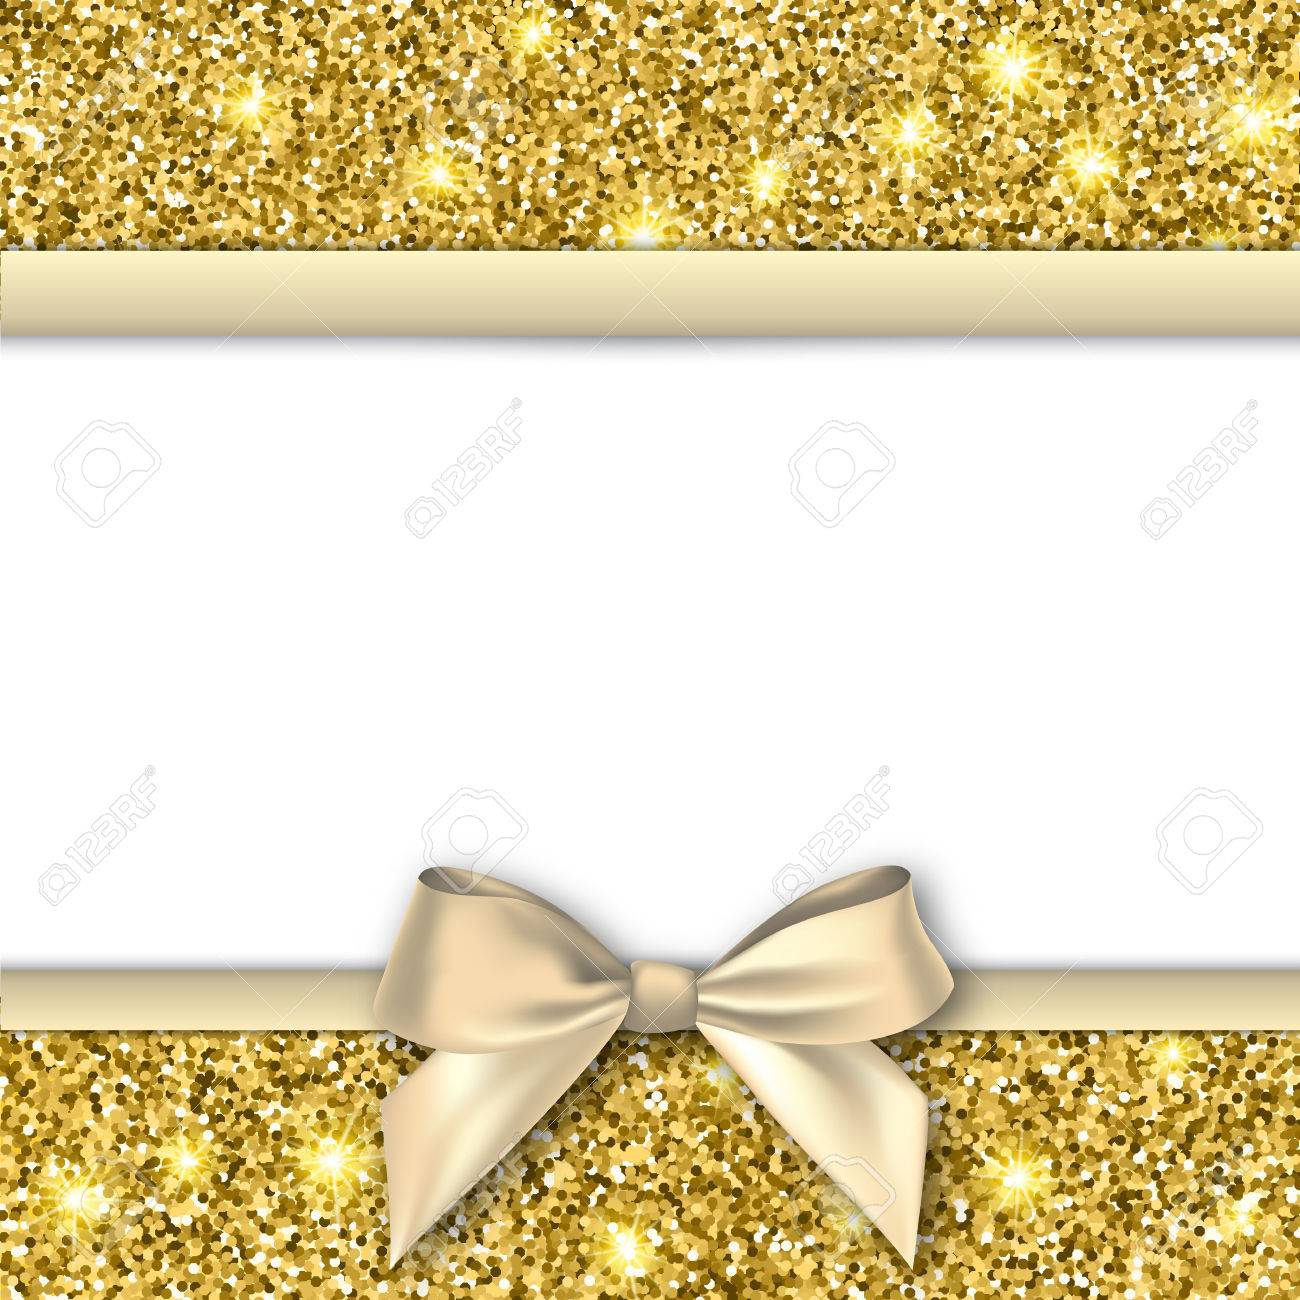 Invitation decorative card template with bow and gold shiny invitation decorative card template with bow and gold shiny glitter gold background for flyer stopboris